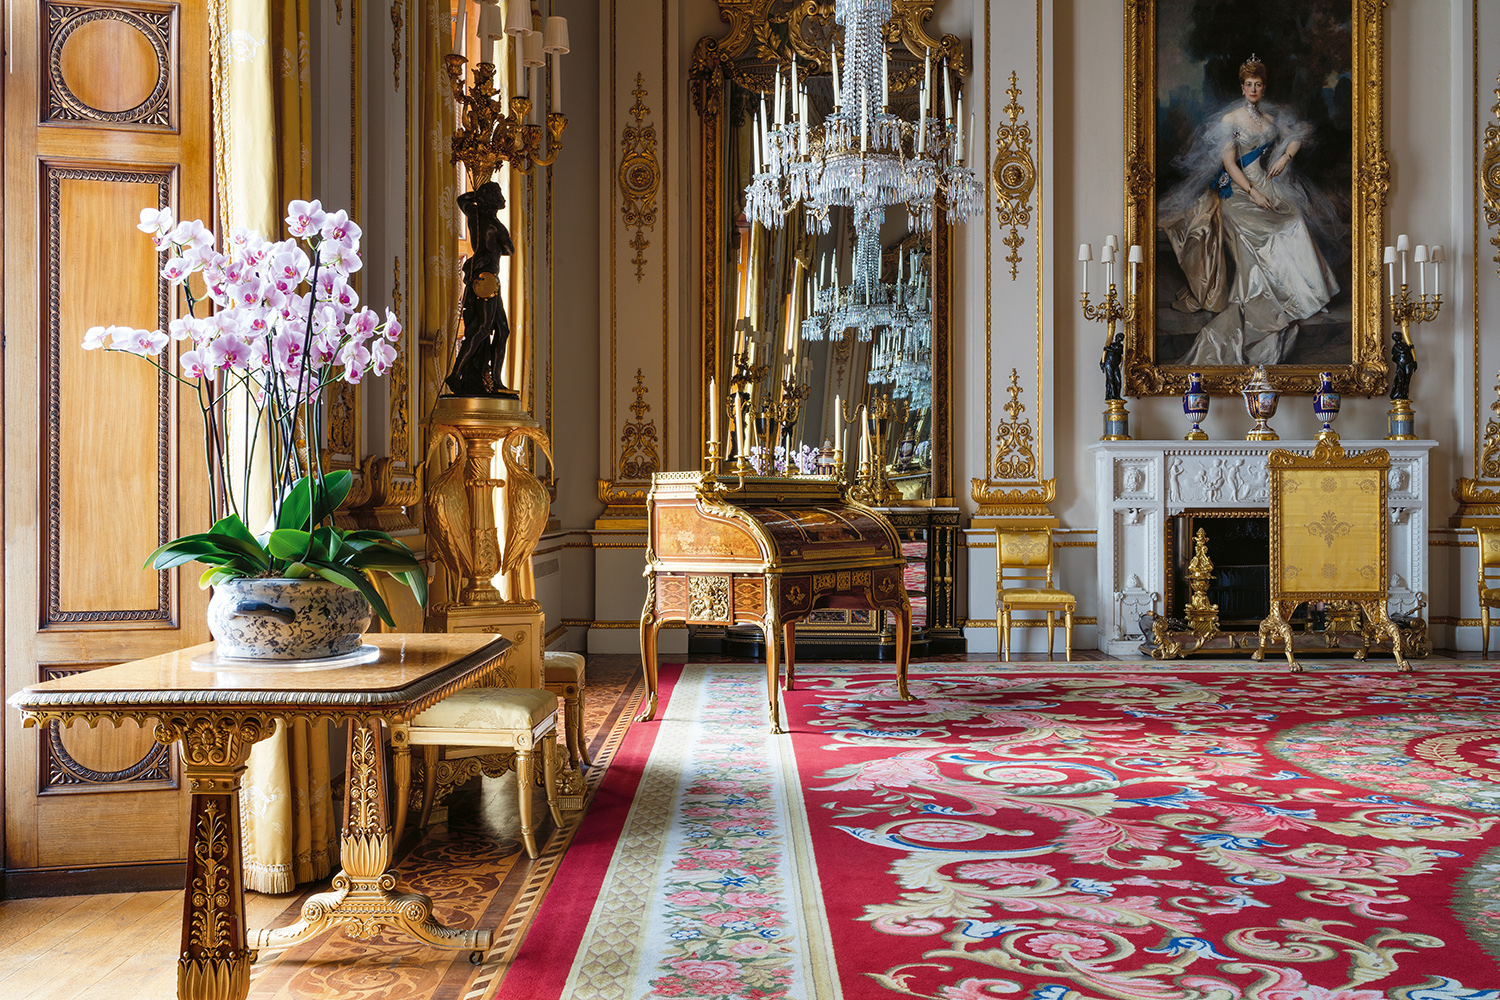 Get A Rare Glimpse Of The Royal Family S Private Rooms At